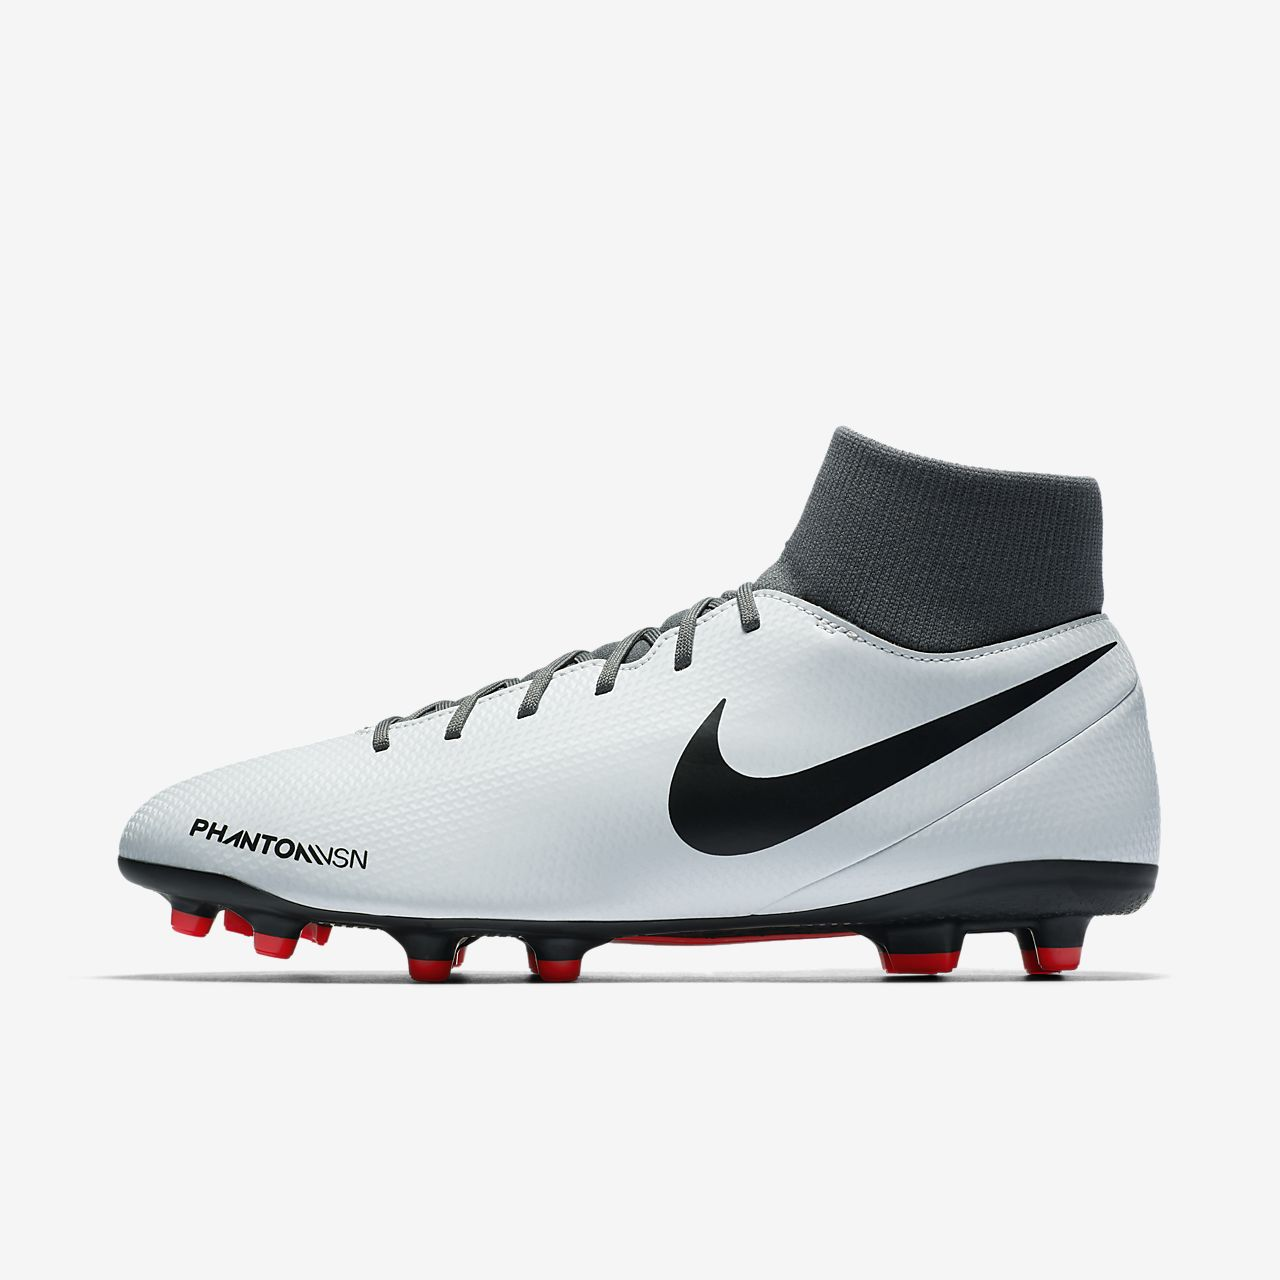 ... order nike phantom vision club dynamic fit botas de fútbol para  múltiples superficies cc96d e4436 3fddae51f0f41